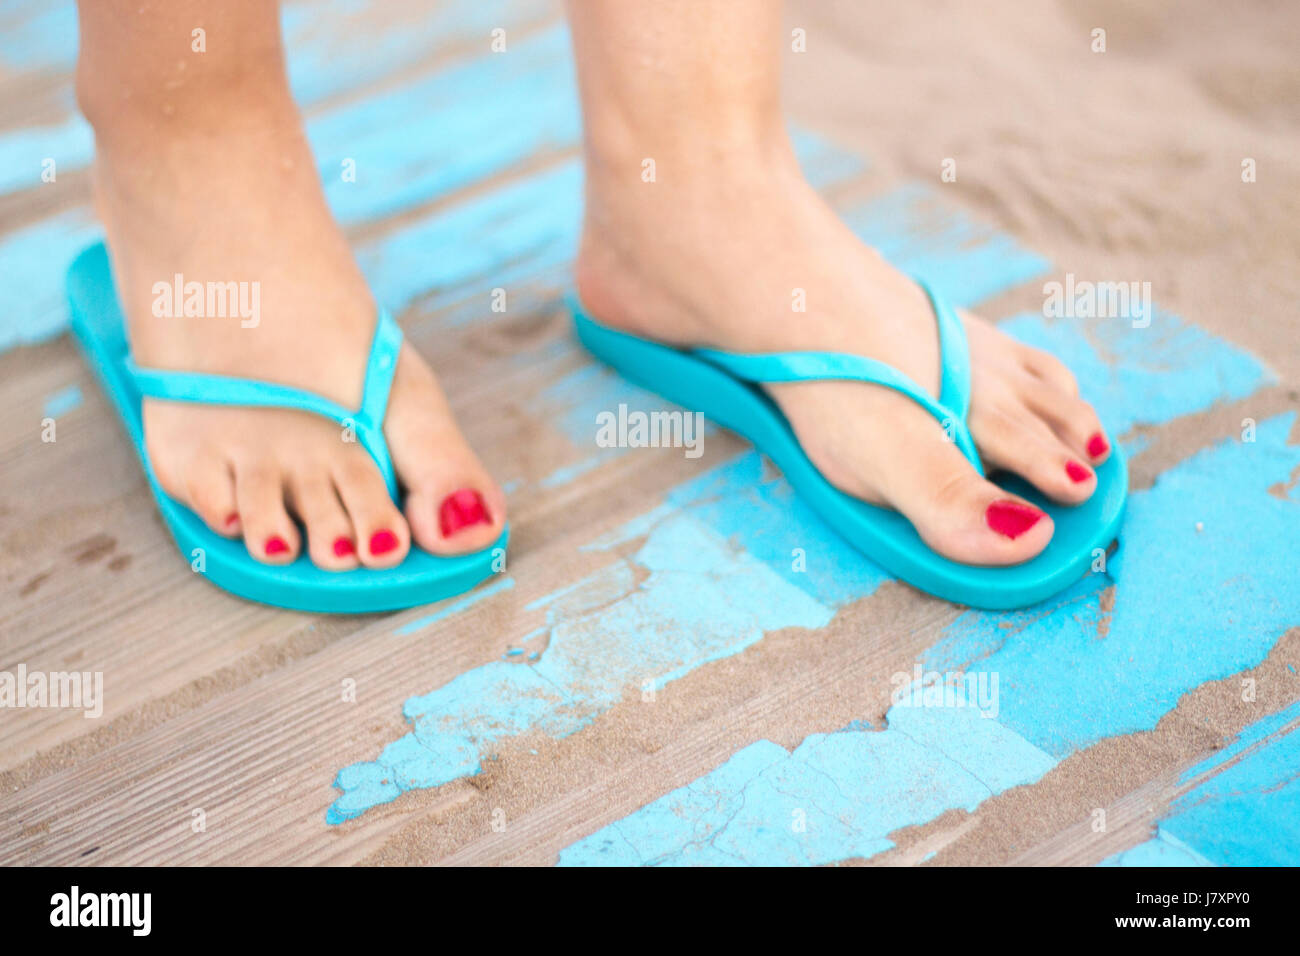 Beach By The Sandals Nail Sandy Red With In Lady's Feet On Varnish qpLSzMGVU